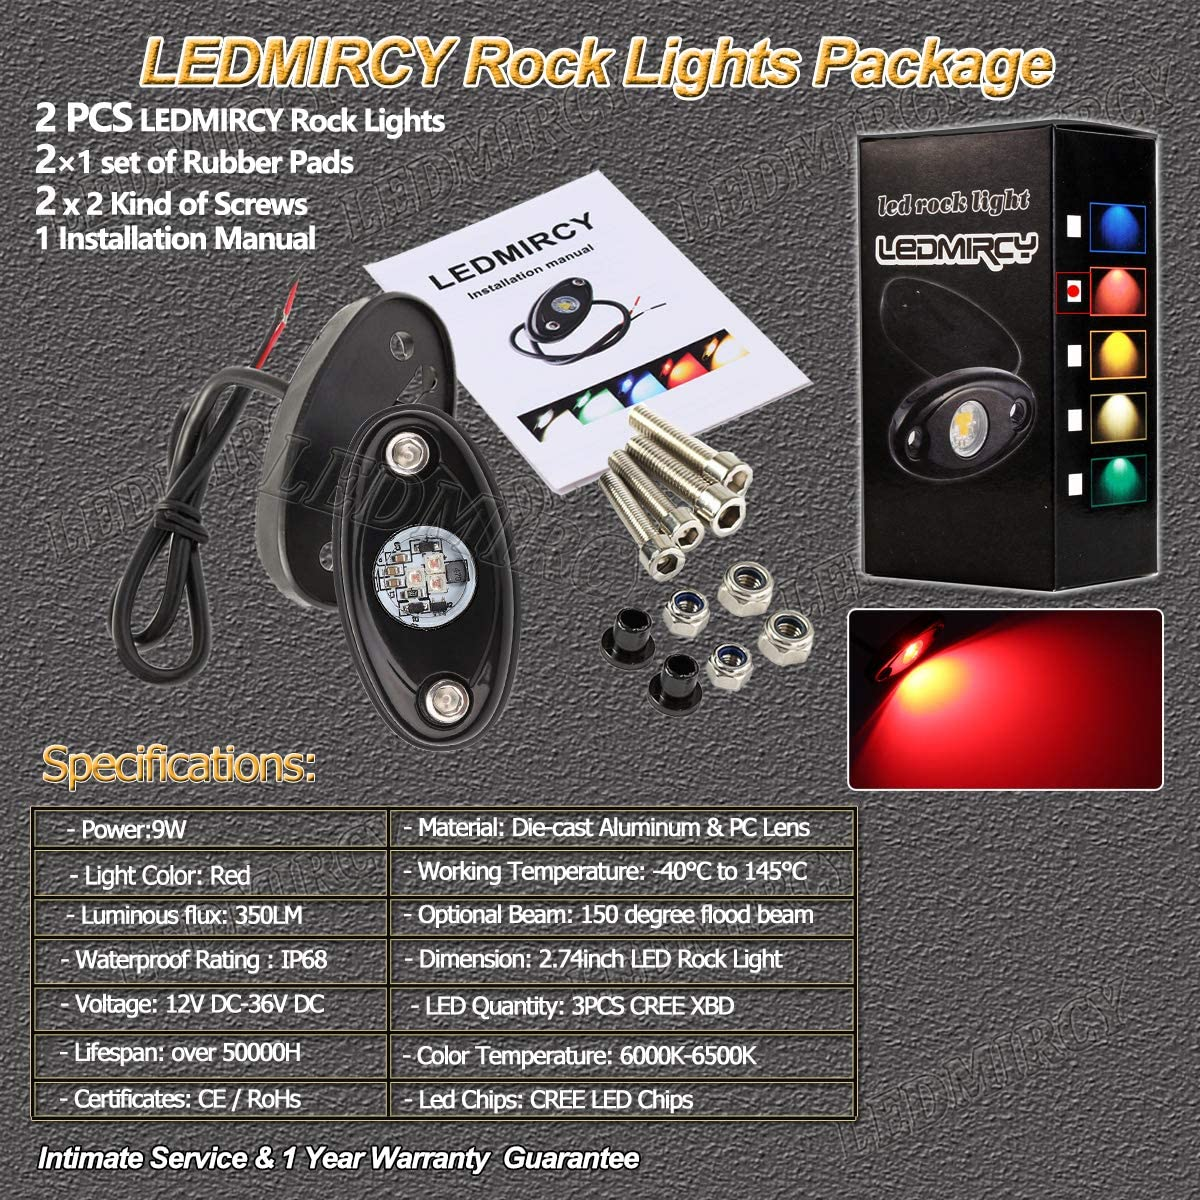 Pack of 6,Red LEDMIRCY LED Rock Lights Red Kit for JEEP Off Road Truck ATV SUV Car Auto Boat High Power Underbody Glow Neon Trail Rig Lights Underglow Lights Waterproof Shockproof